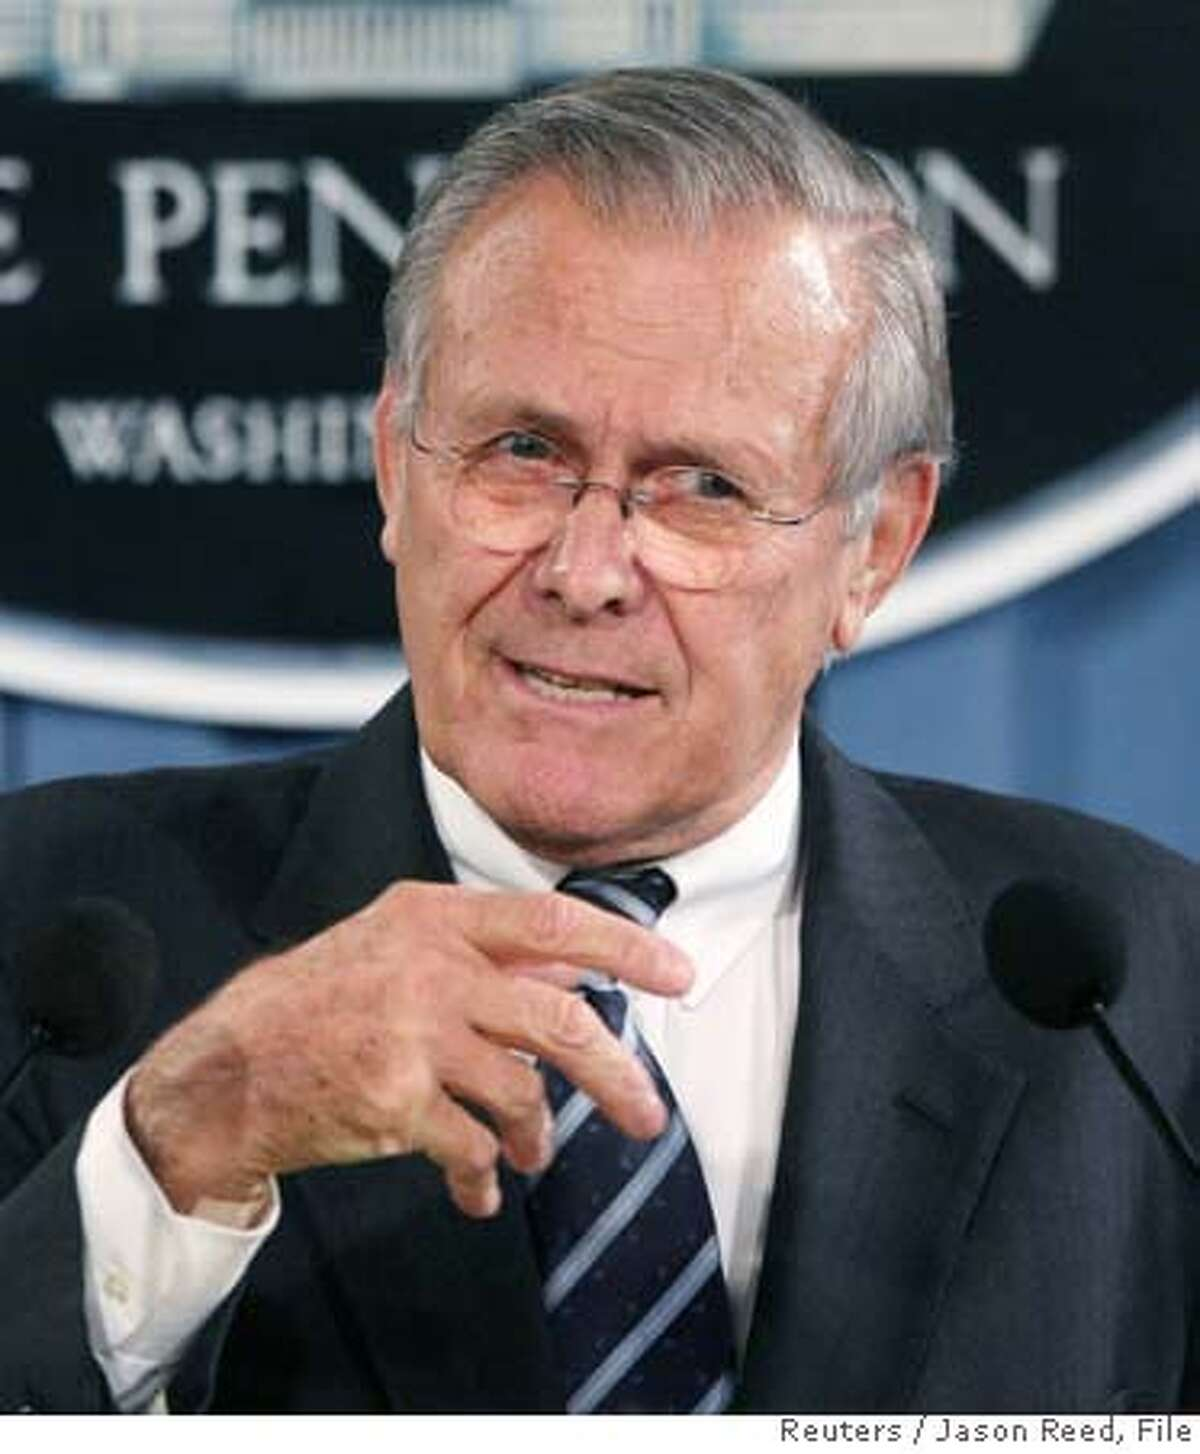 U.S. Secretary of Defense Donald Rumsfeld gestures while speaking at a news briefing at the Pentagon in Washington, in this October 26, 2006 file photo. U.S. President George Bush said on November 1, 2006 he expects Rumsfeld to stay on as defense secretary for the rest of the current administration, effectively rejecting election-year demands he resign over Iraq. REUTERS/Jason Reed/Files (UNITED STATES) 0